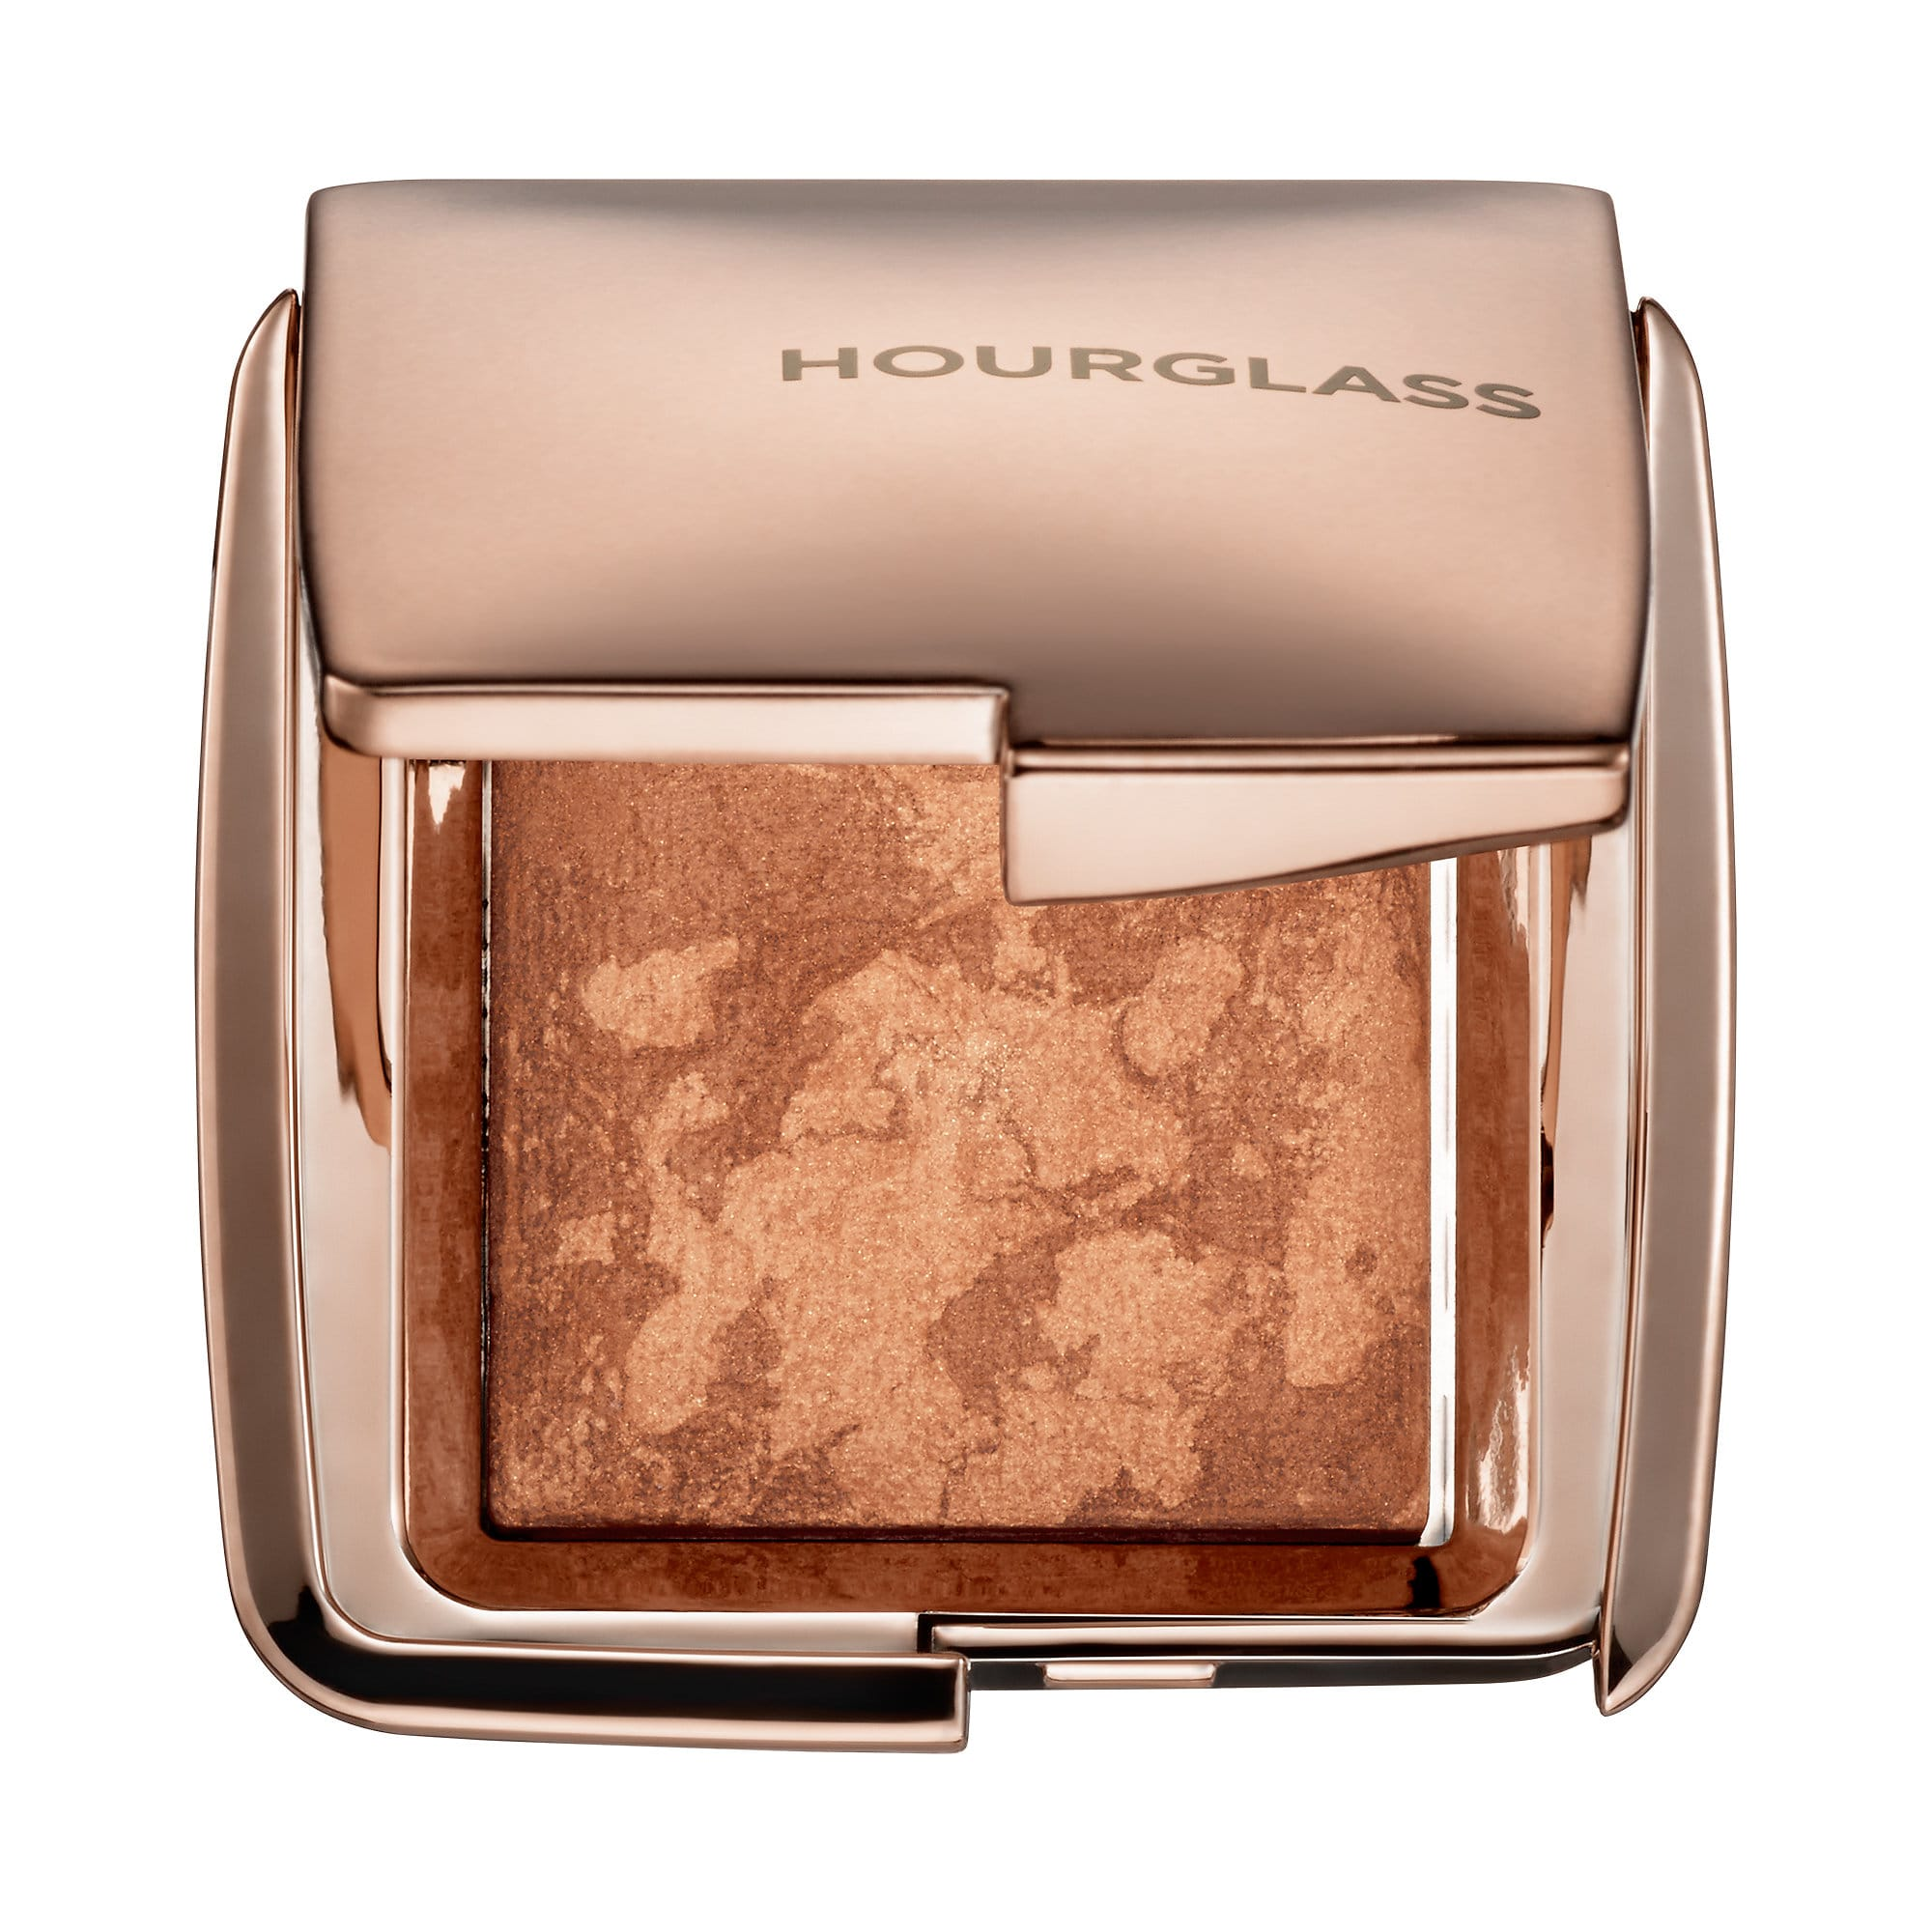 Hourglass Ambient Lighting Bronzer (Suministrada)